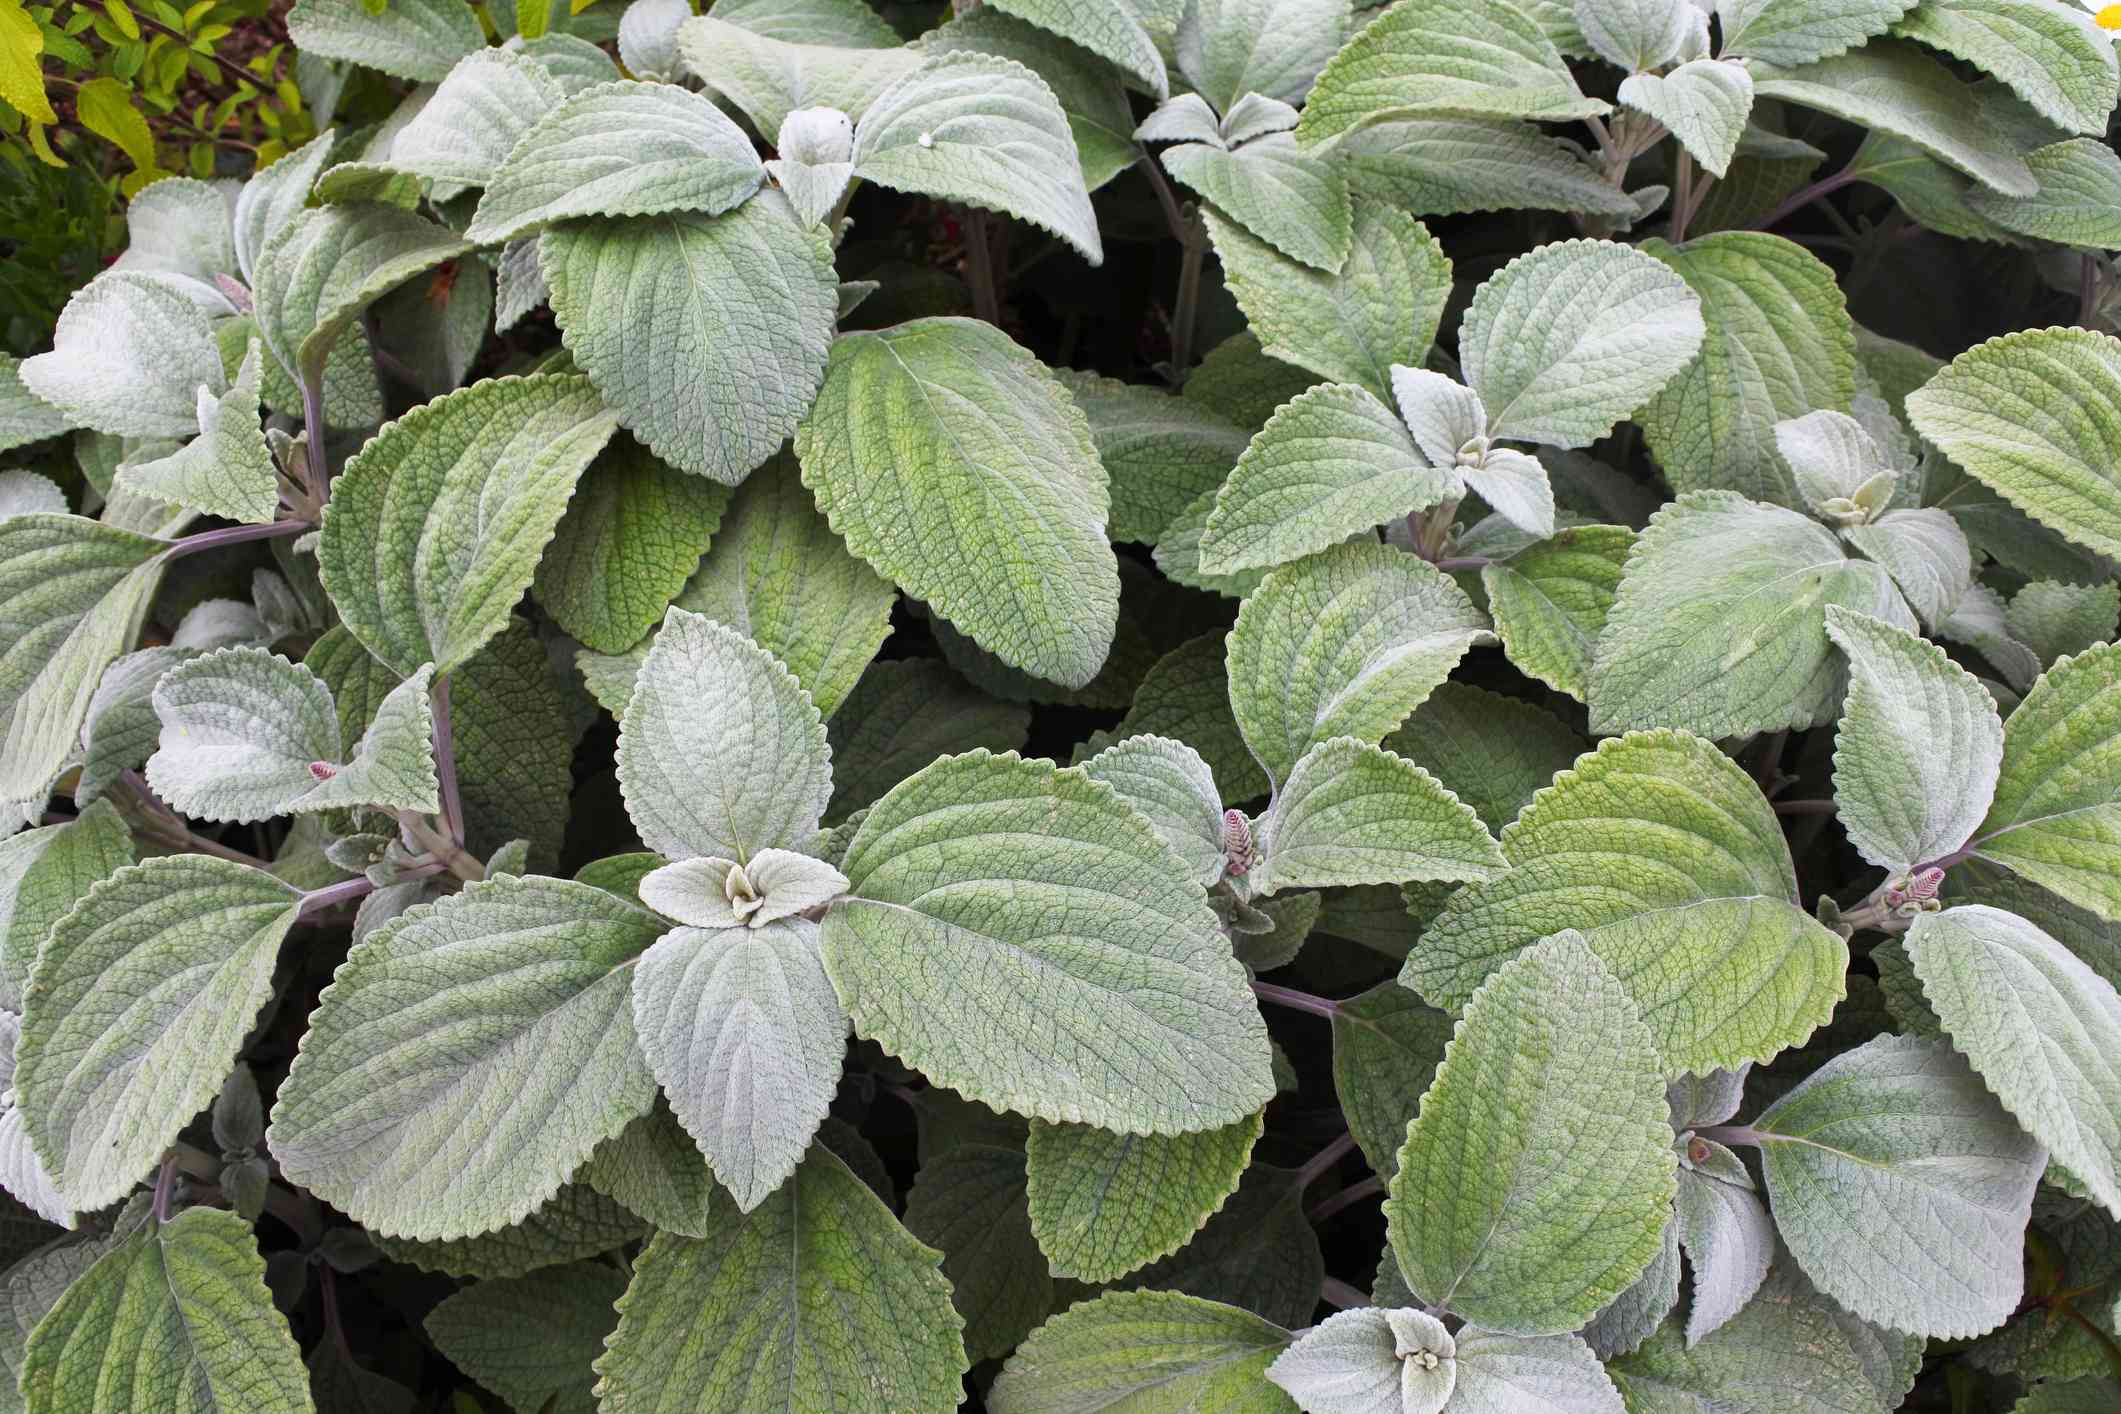 Close-up image of Plectranthus Argentitus, in an English summer garden.